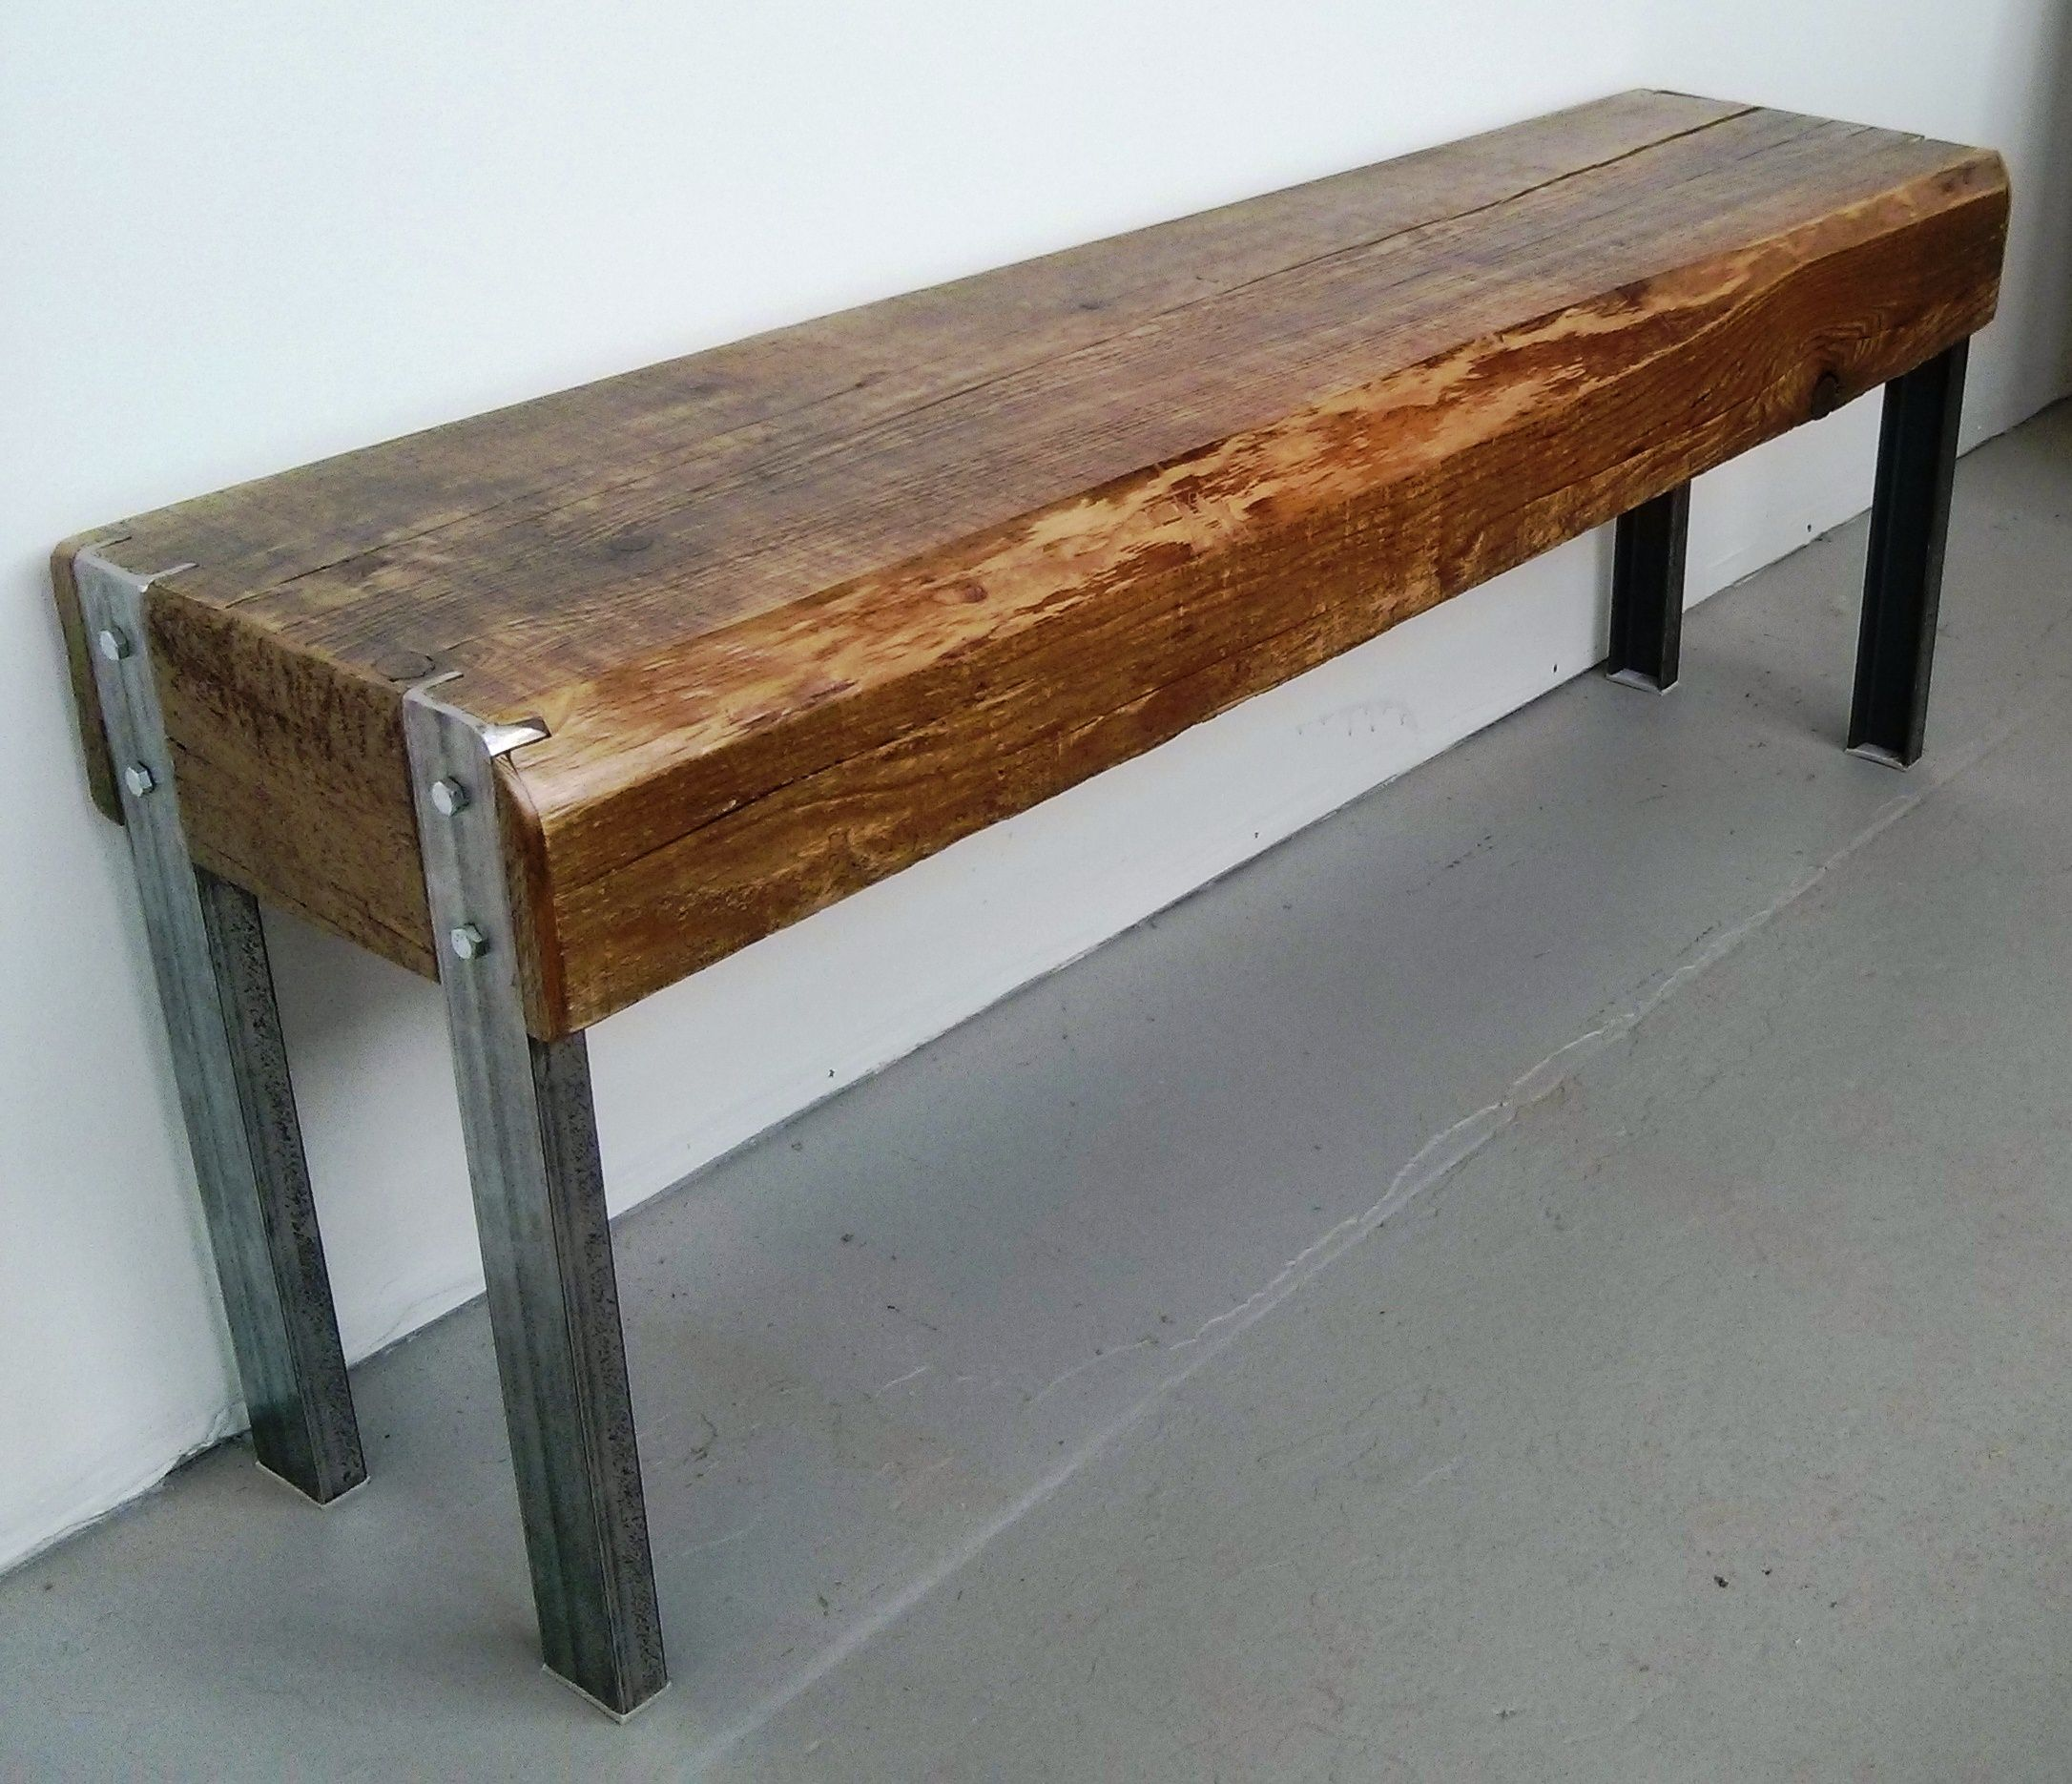 Hand made reclaimed cedar box joint bench coffee table by - Reclaimed Barn Beam And Steel Bench By Barnboardstore Com